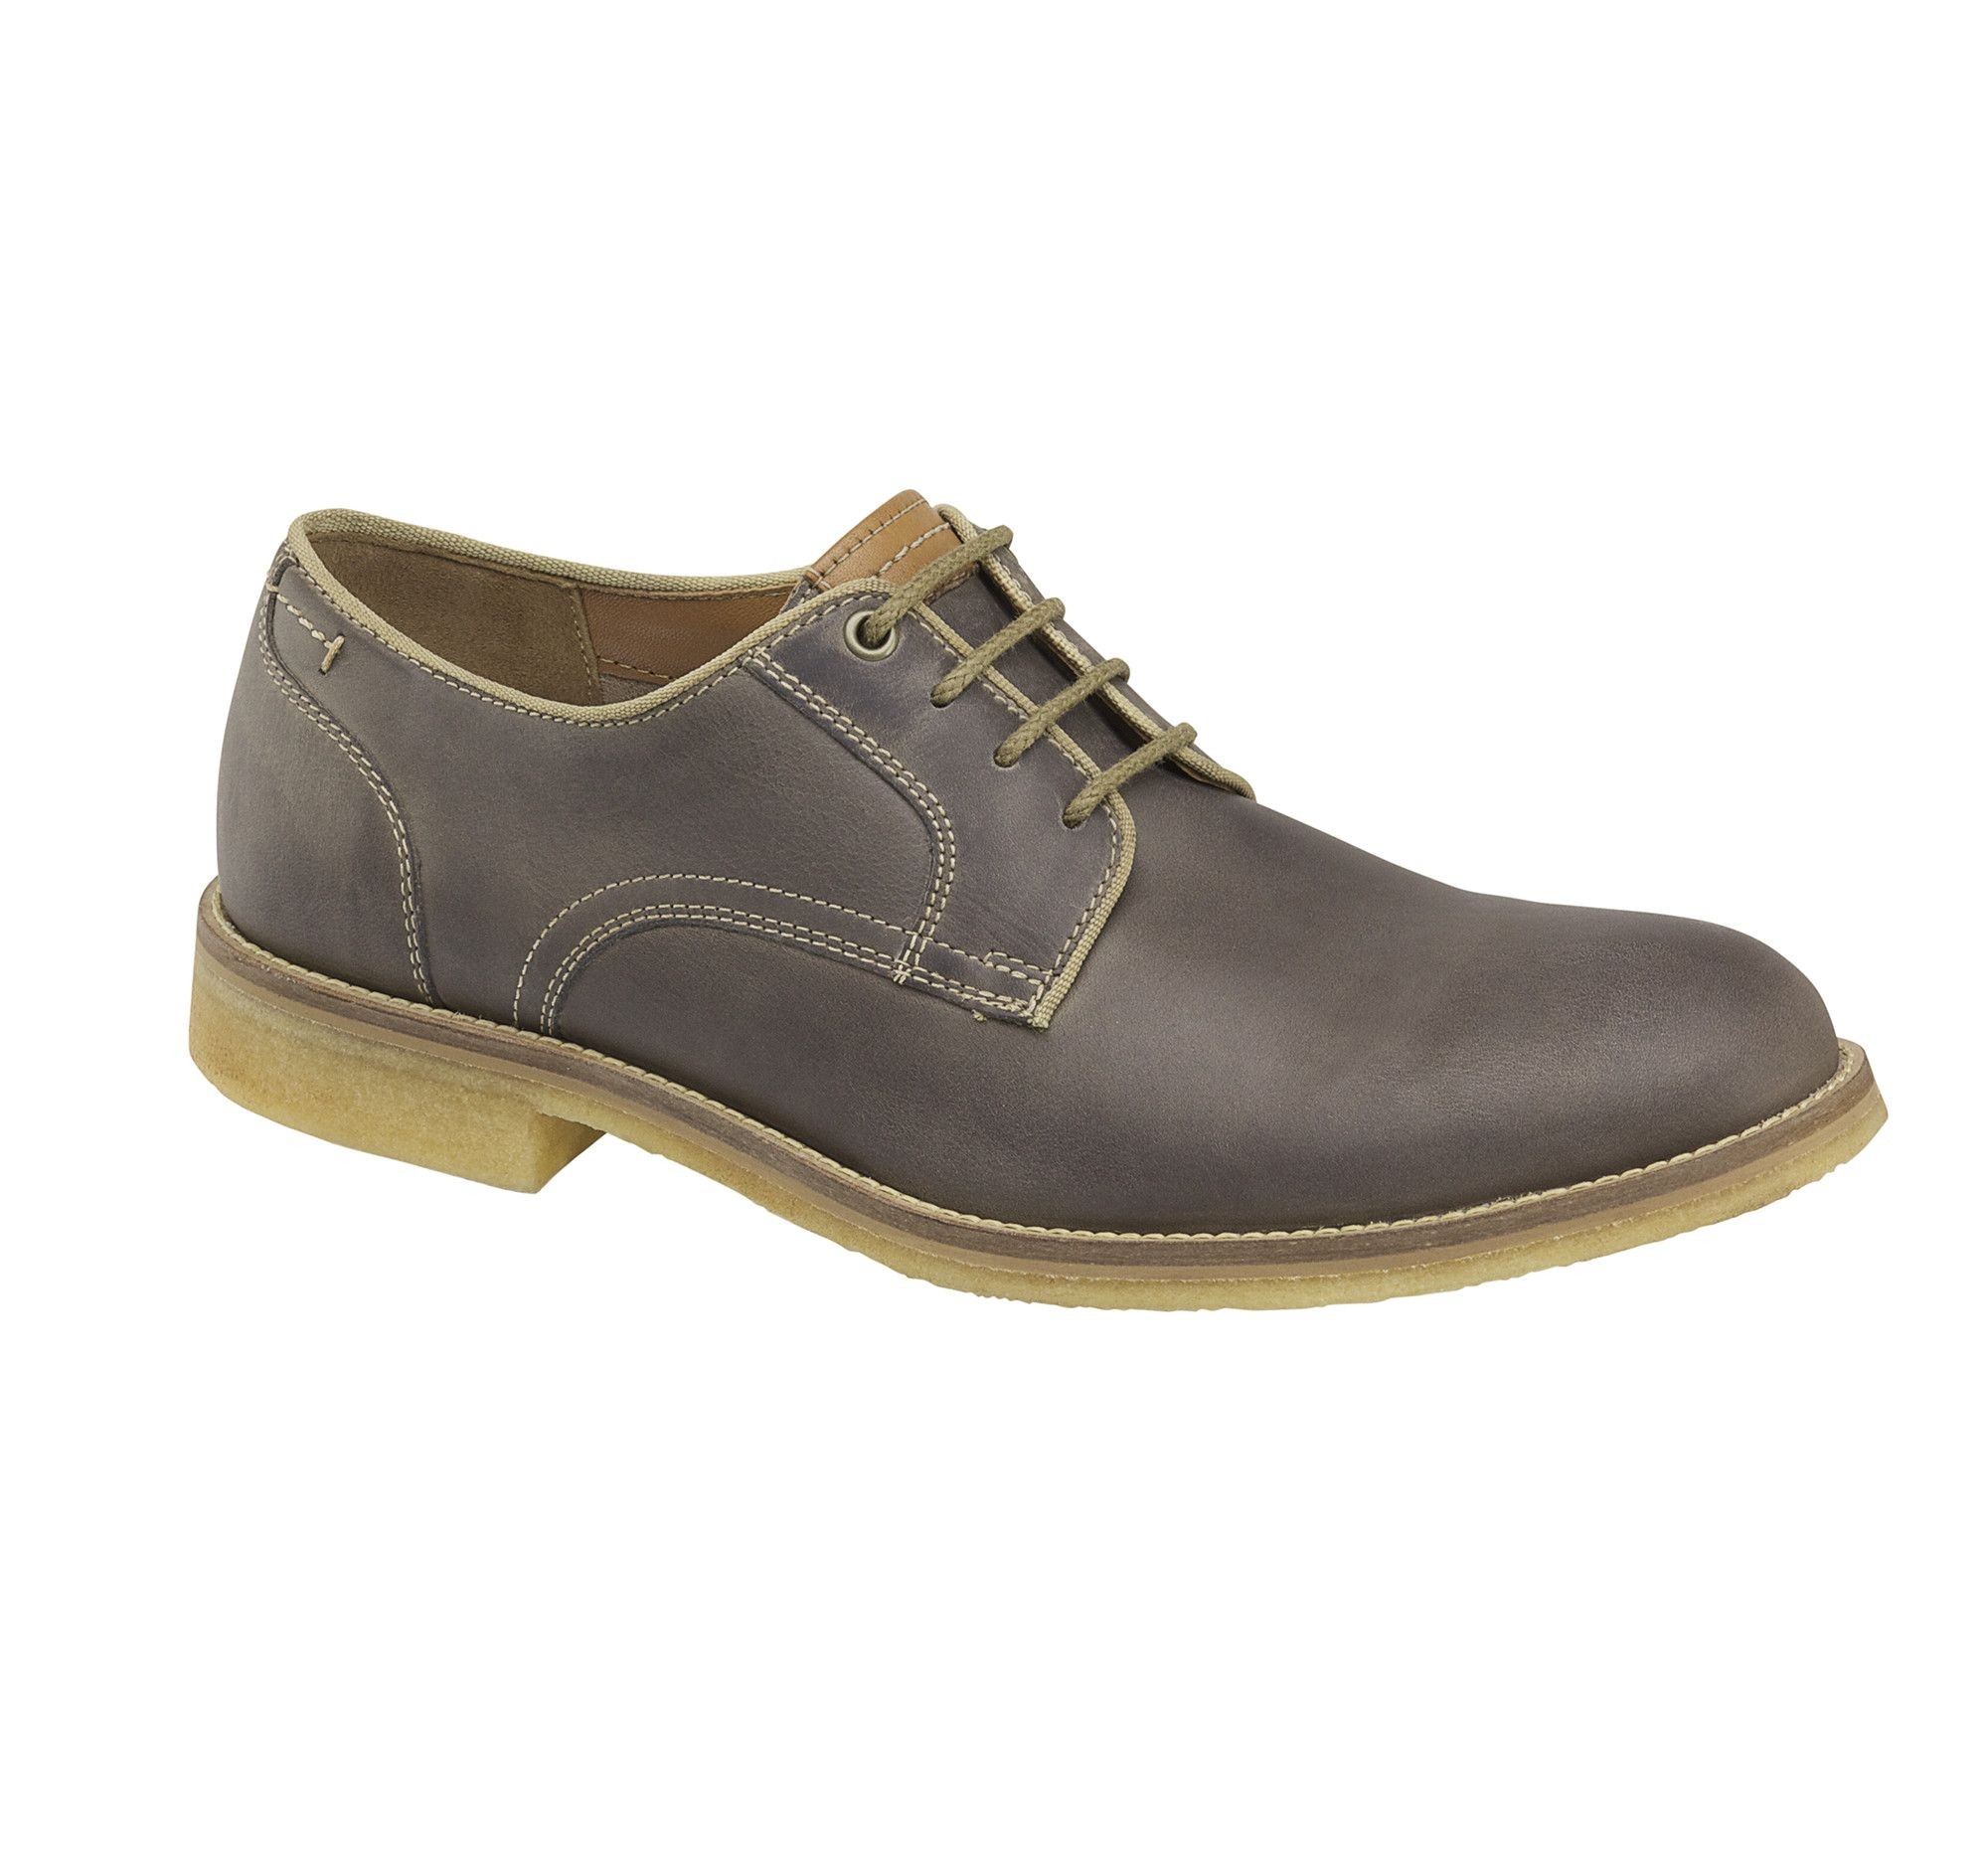 Johnston & MurphyConard Causal Dress Wingtip Oxford givt6eOD